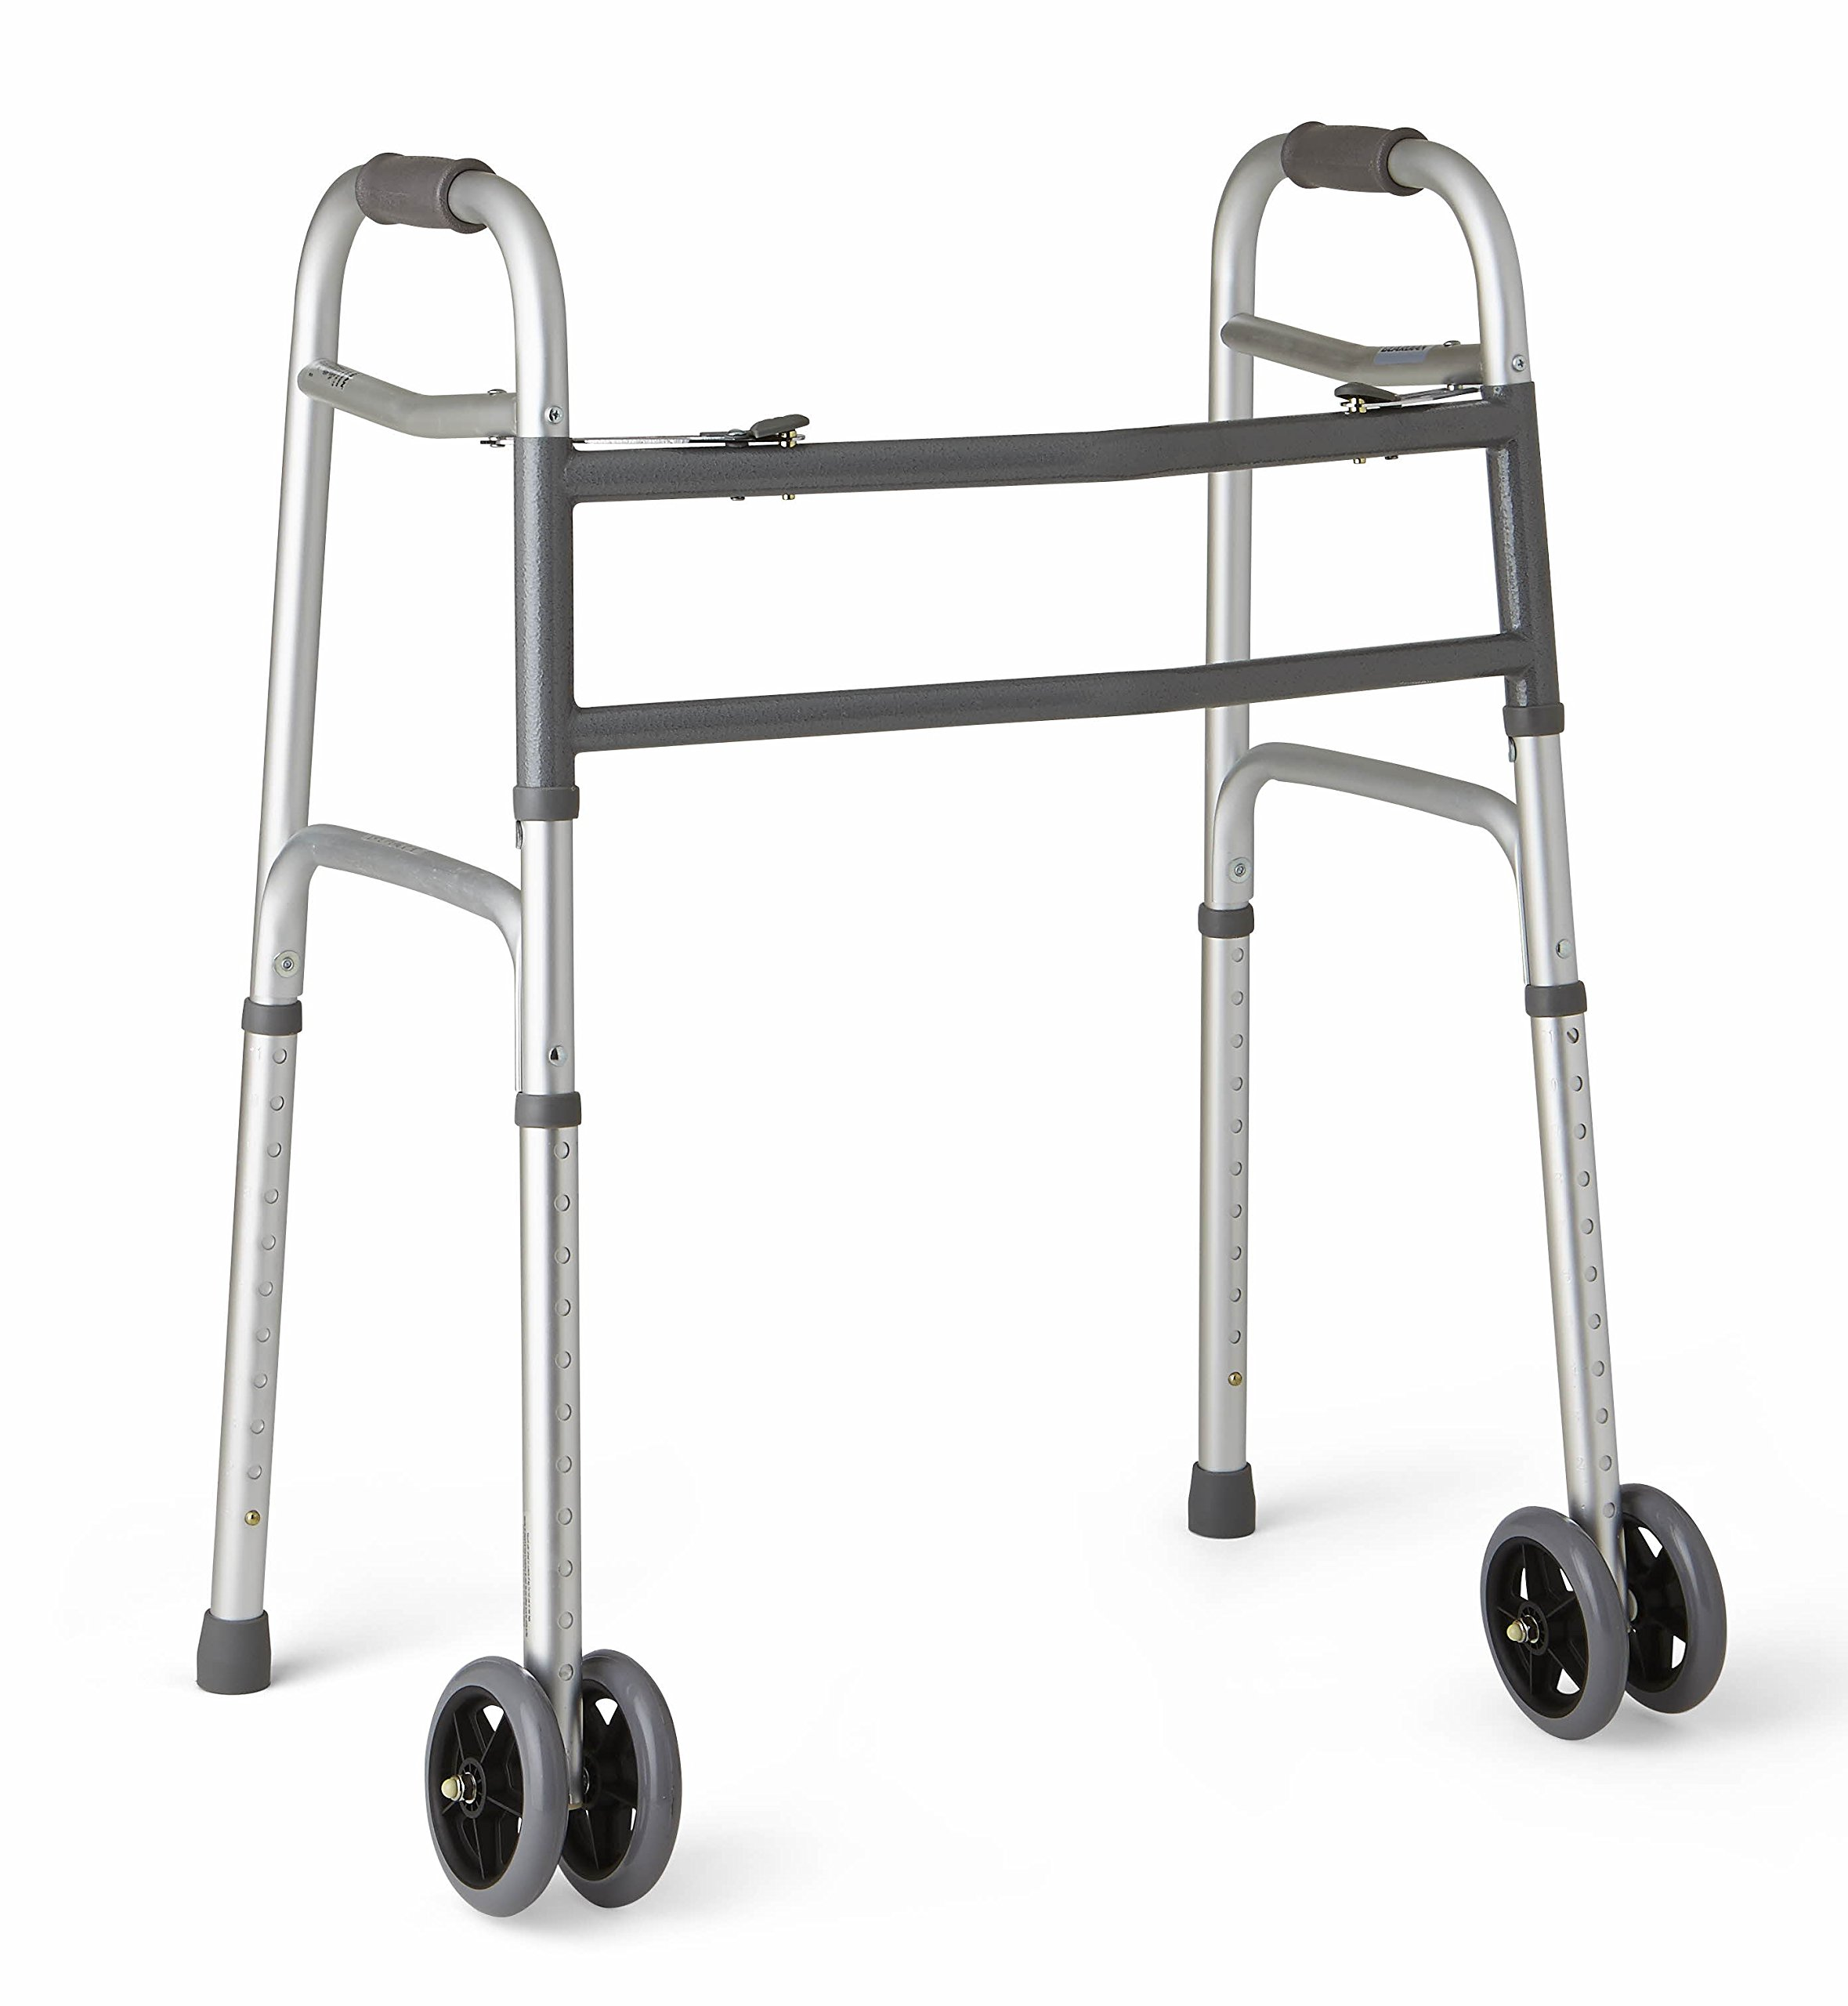 Medline Heavy Duty Bariatric Folding Walker with 5'' Wheels with Durable Plastic Handles by Medline